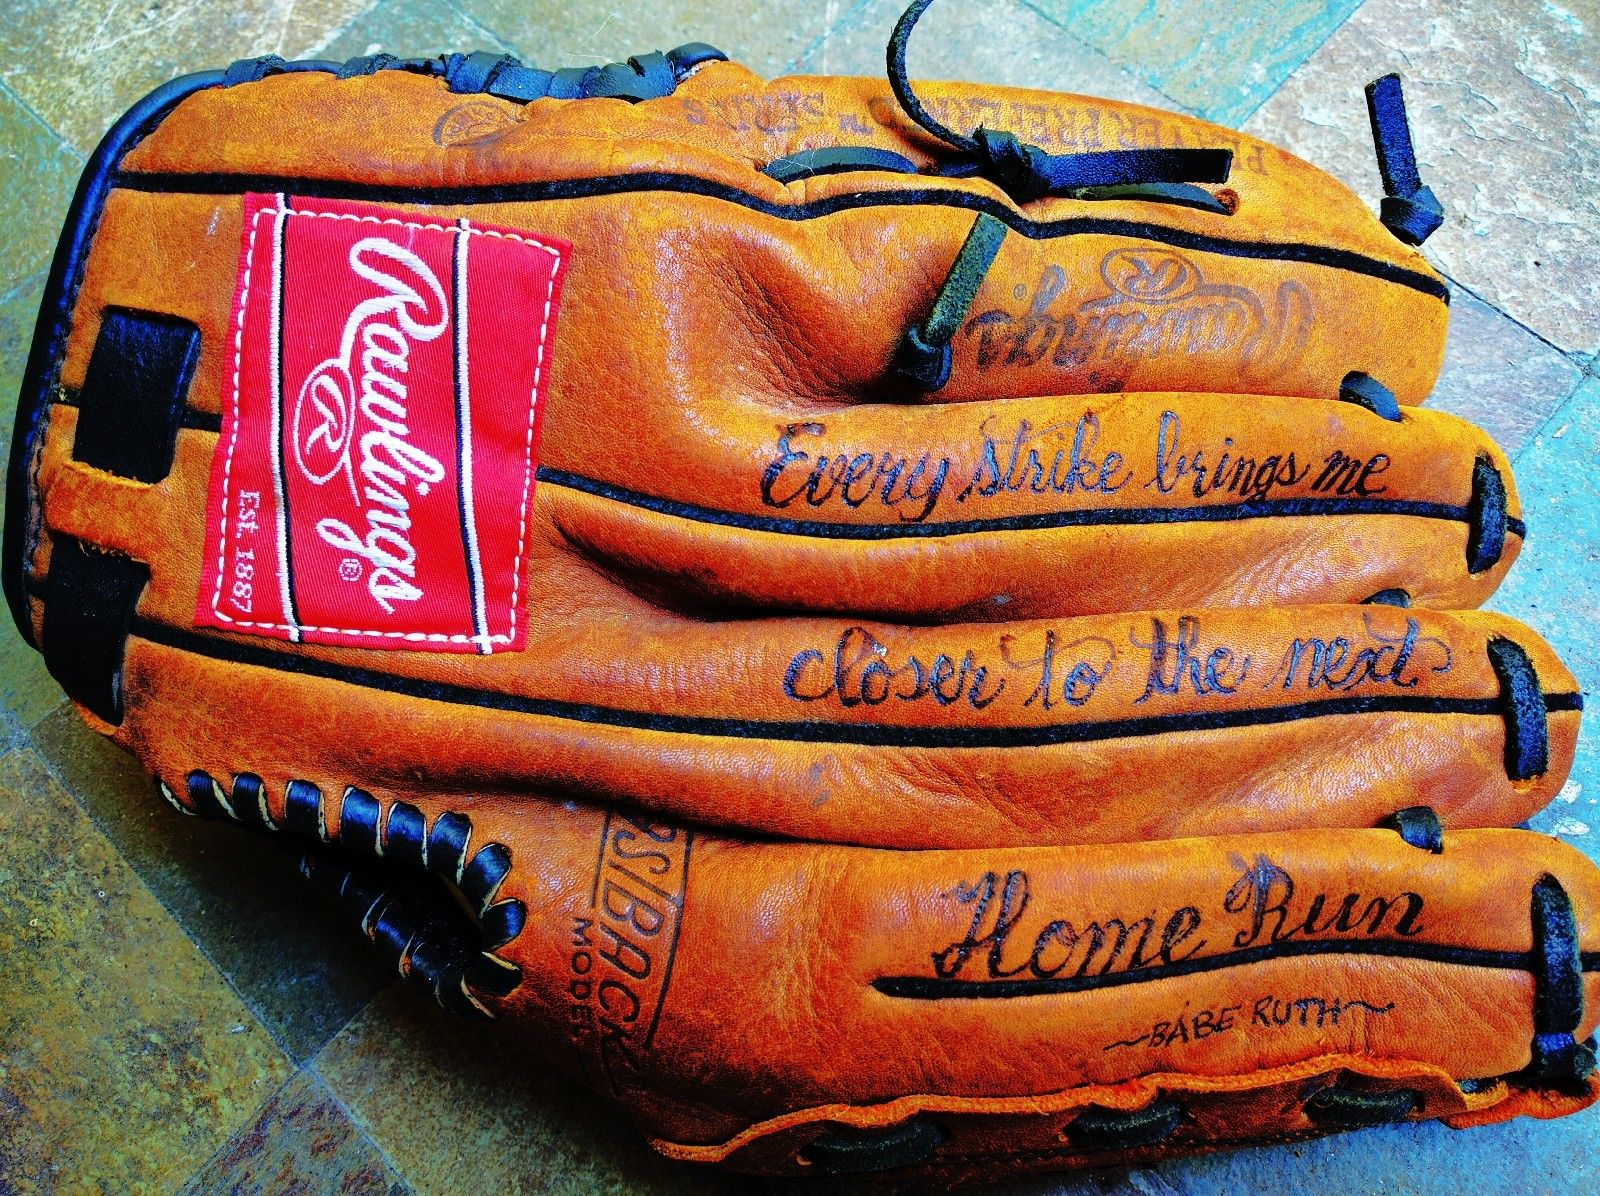 Leather Engraving And Embossing On A Baseball Glove Great Grooms Gift Or Corporate Gift Baseball Glove Baseball Monogram Personalized Baseballs